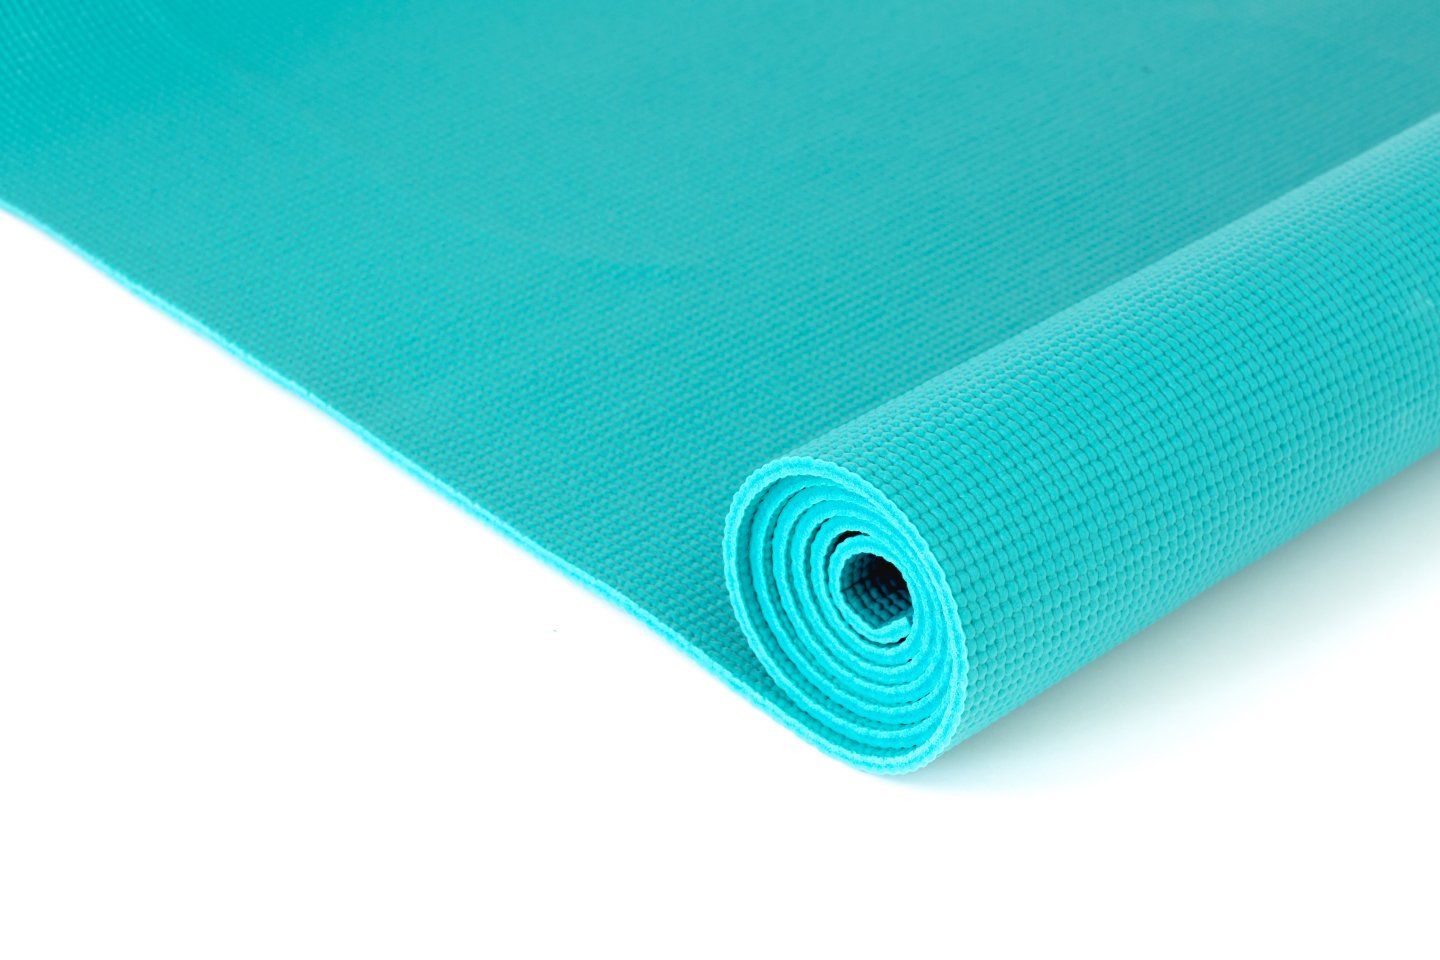 yoga-mat-unrolled 4460x4460